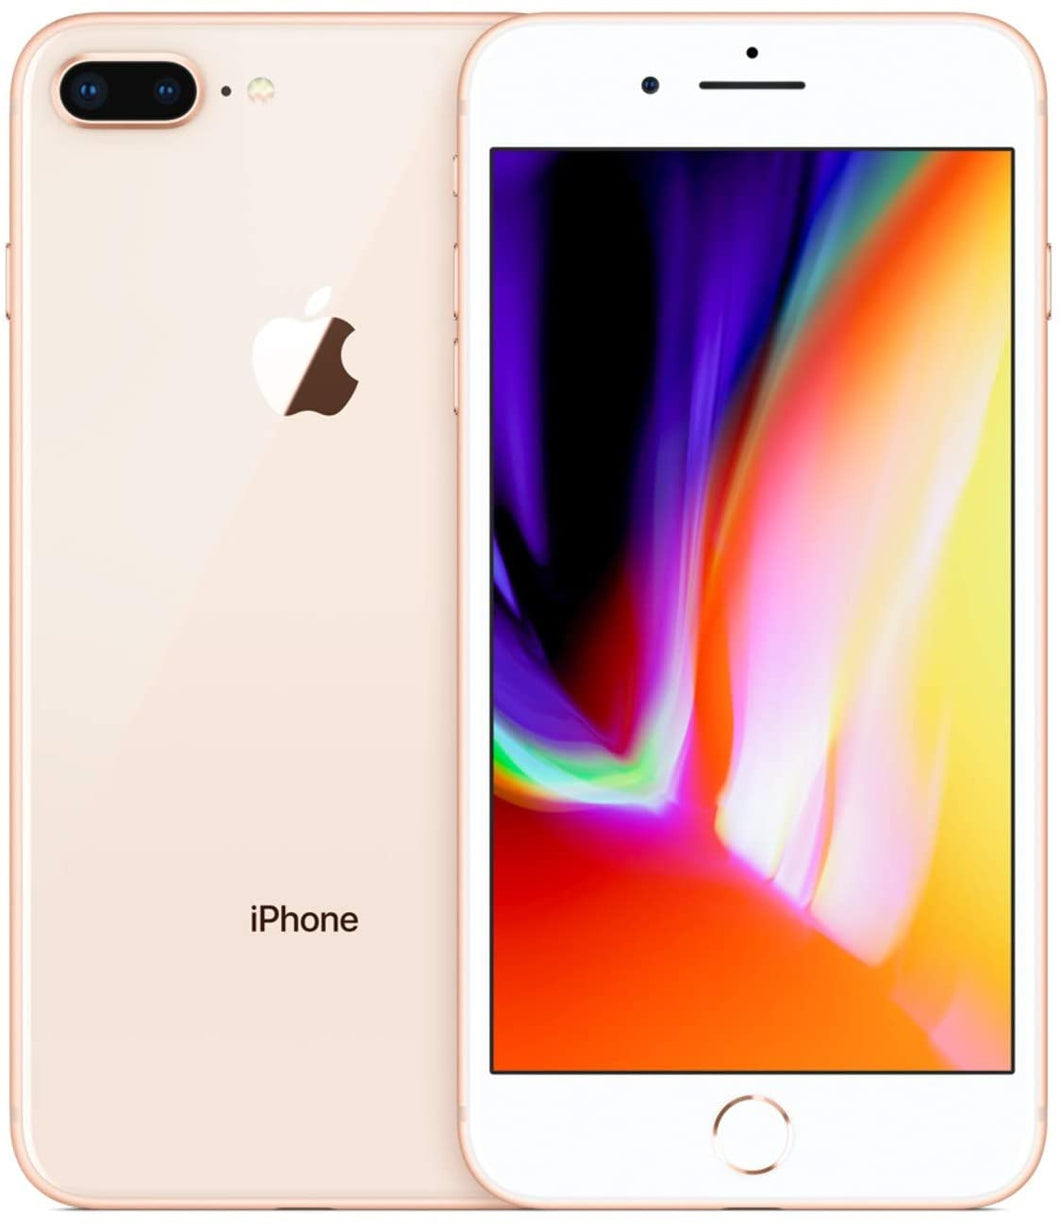 Apple iPhone 8 Plus With FaceTime 4G LTE